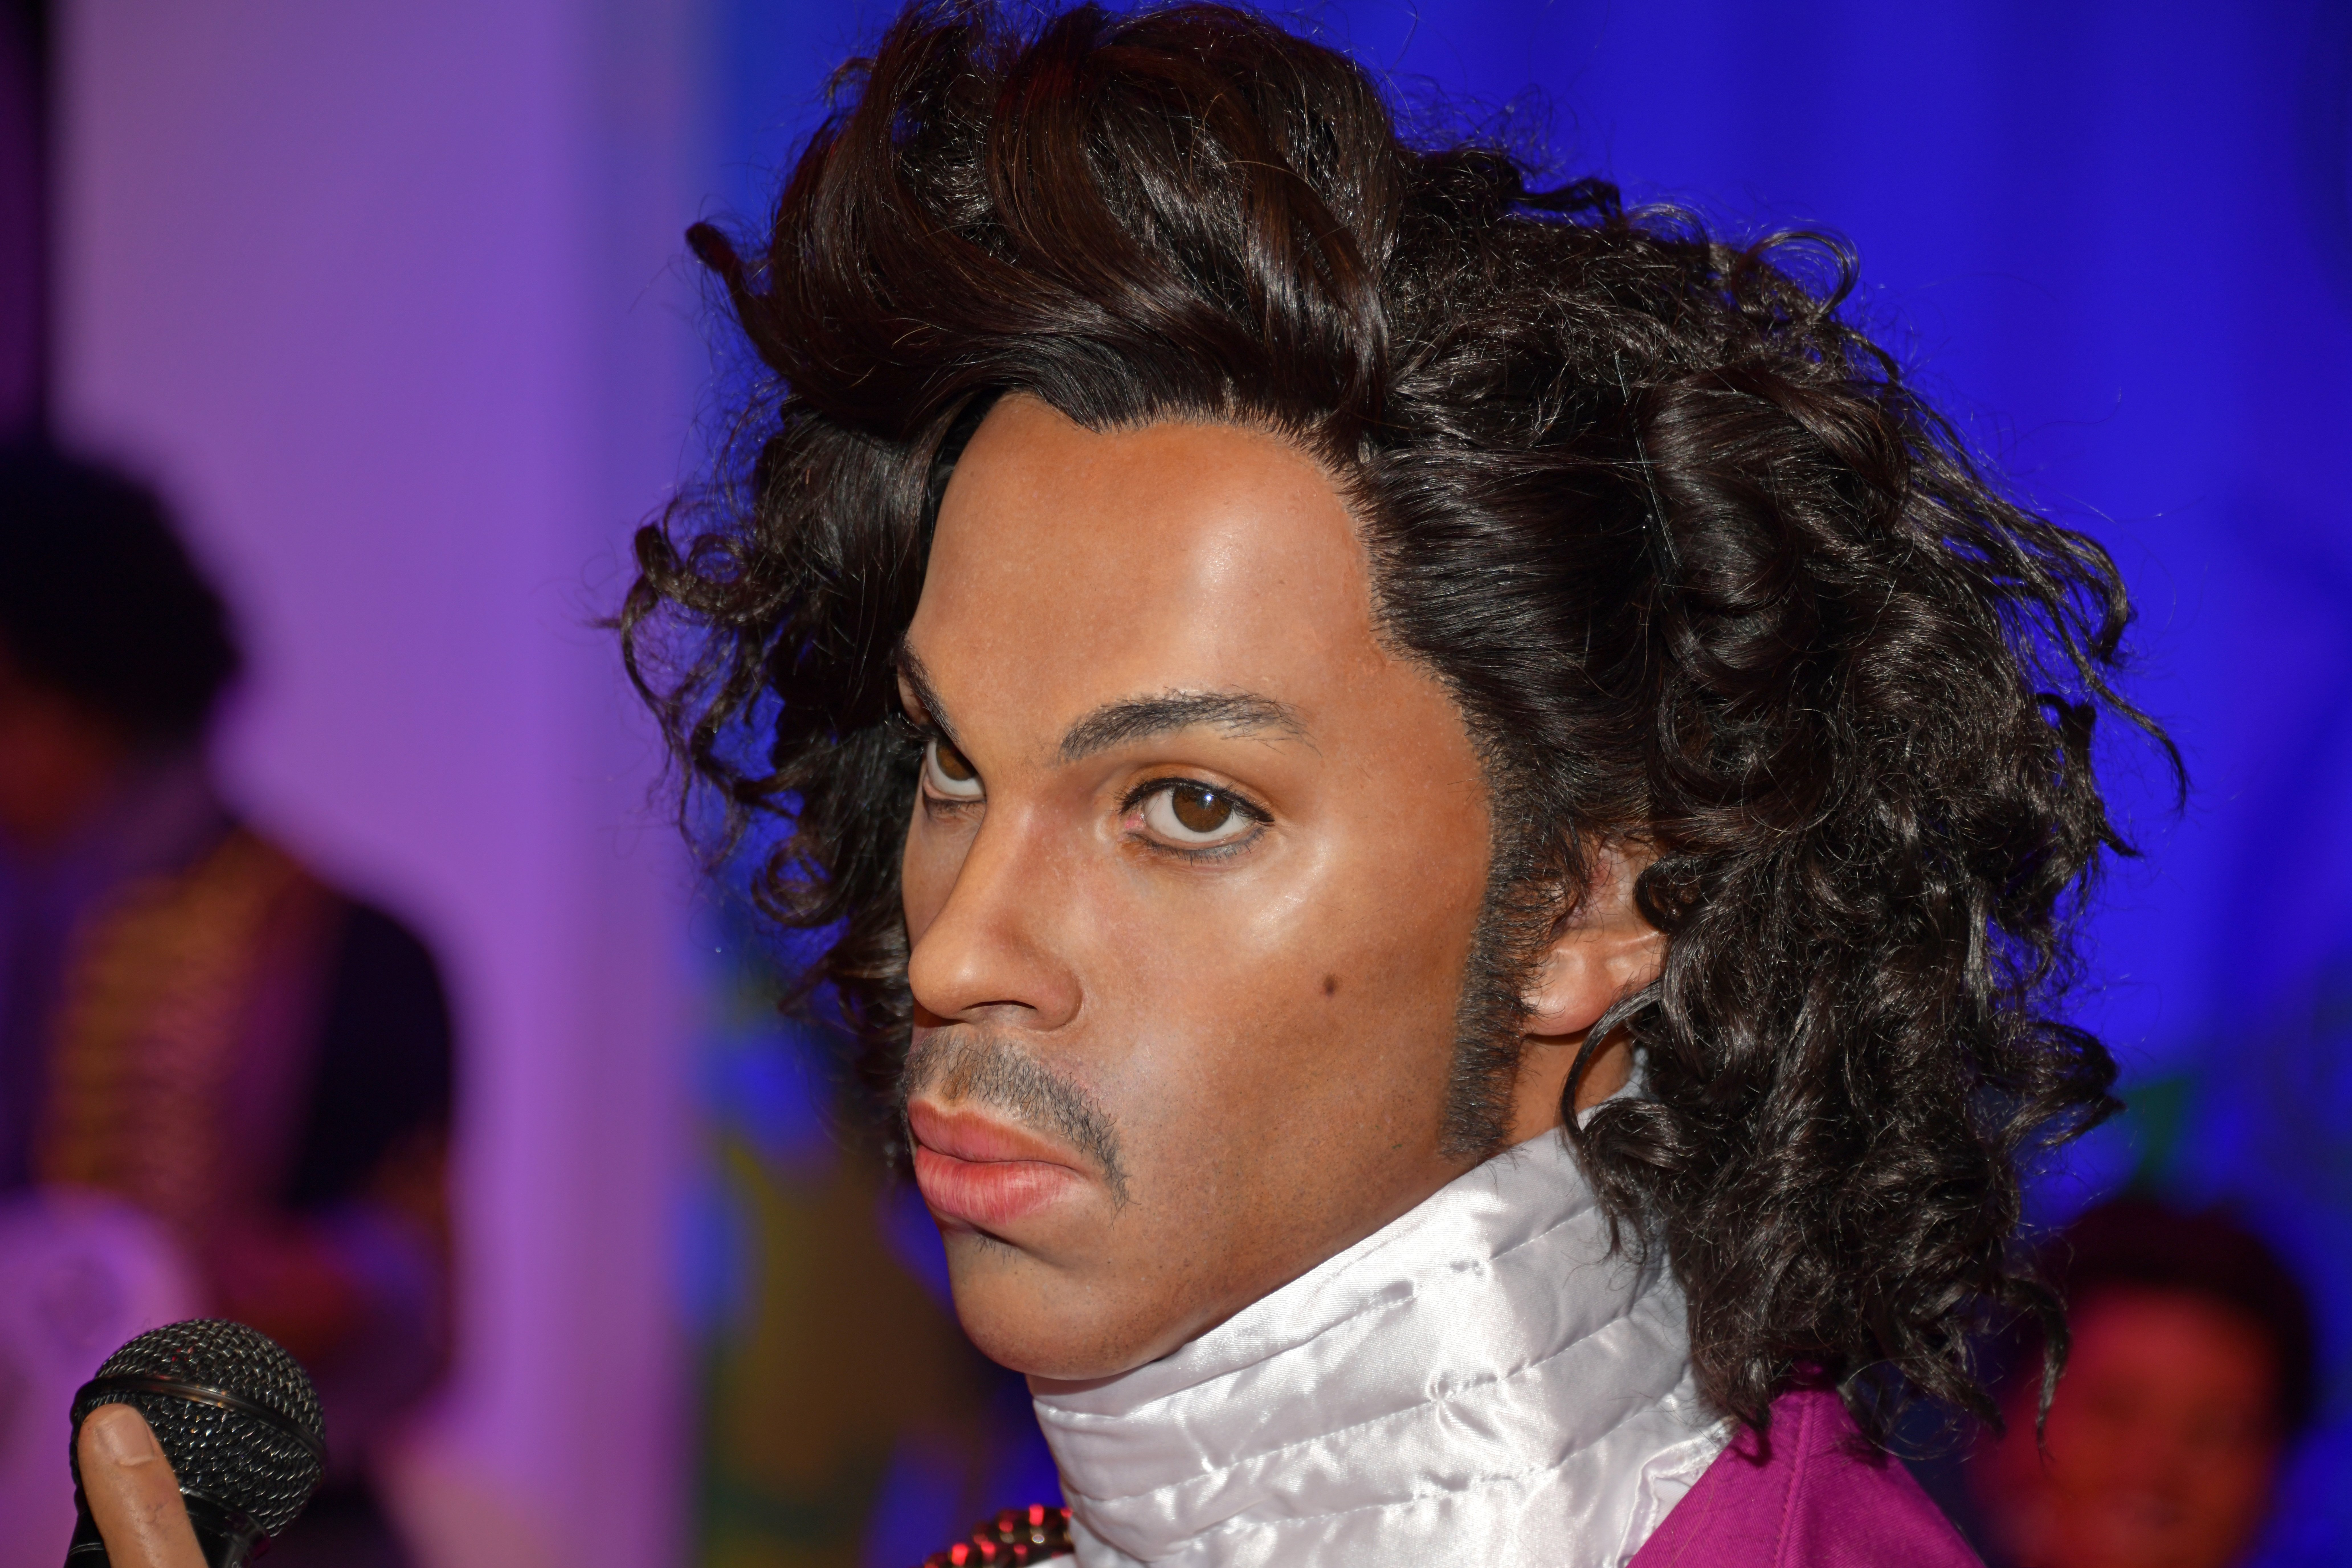 Prince Rogers Nelson at Madame Tussauds Las Vegas NV, USA 09-30-18 | Photo: Shutterstock